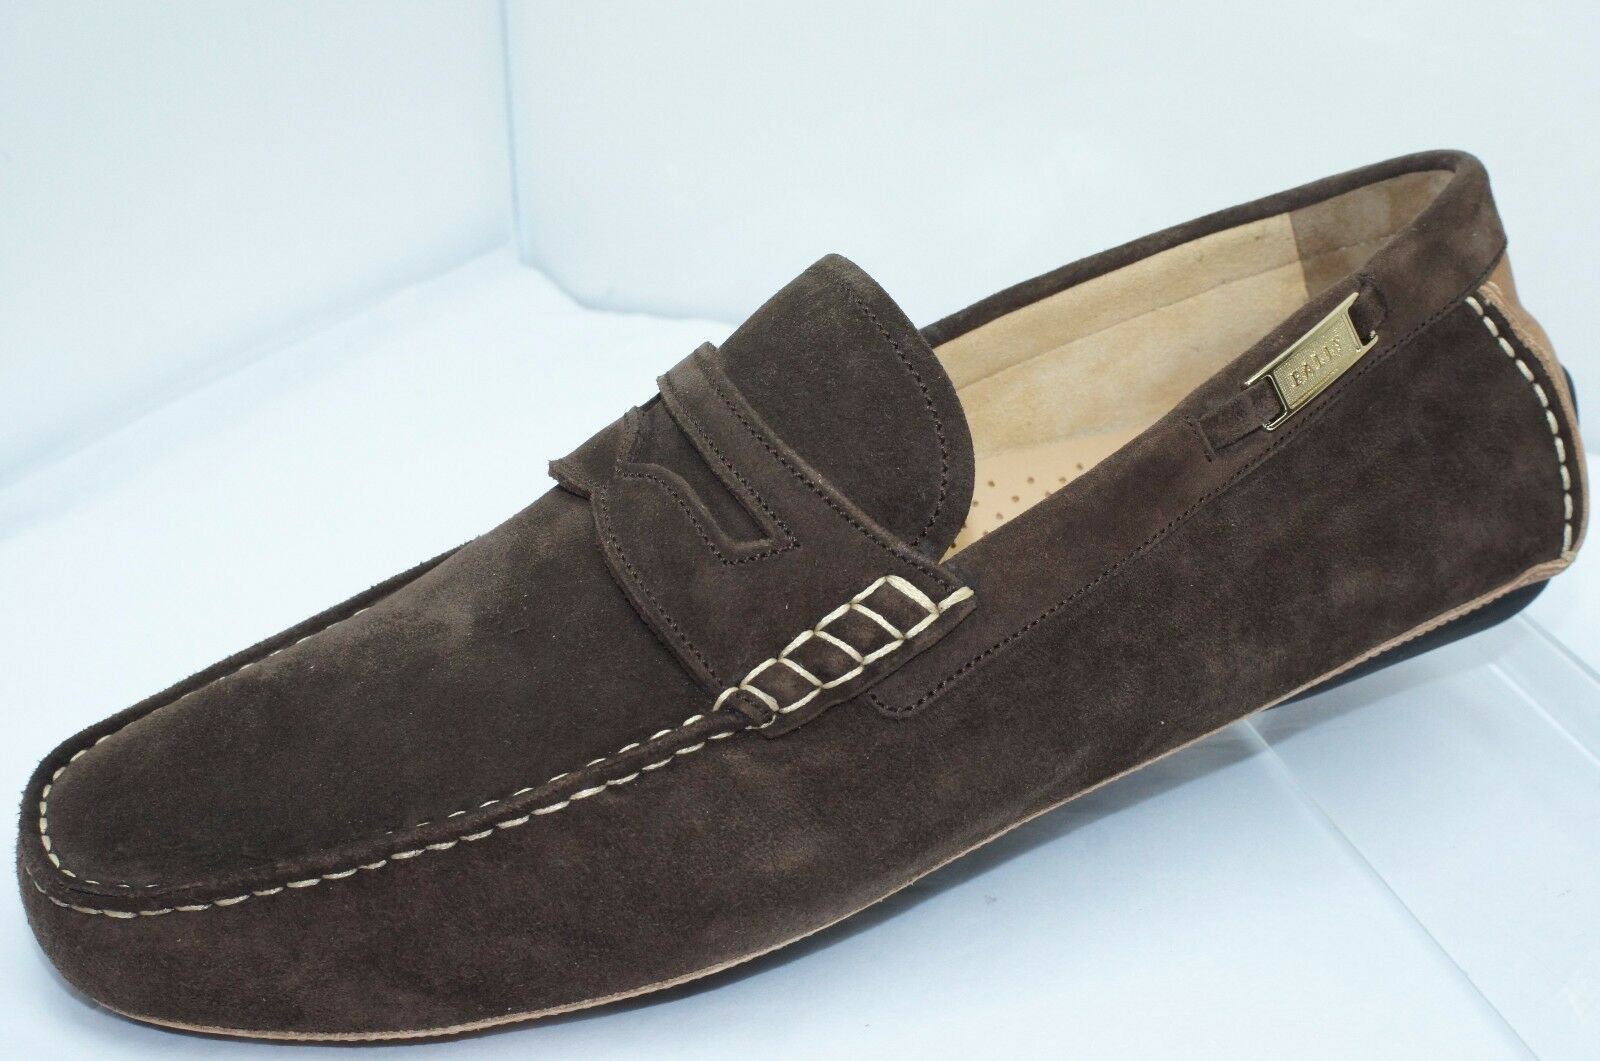 New Bally Mens scarpe Wilwood Loafers Dimensione 9.5 Marroneee Drivers Suede Sale Gift